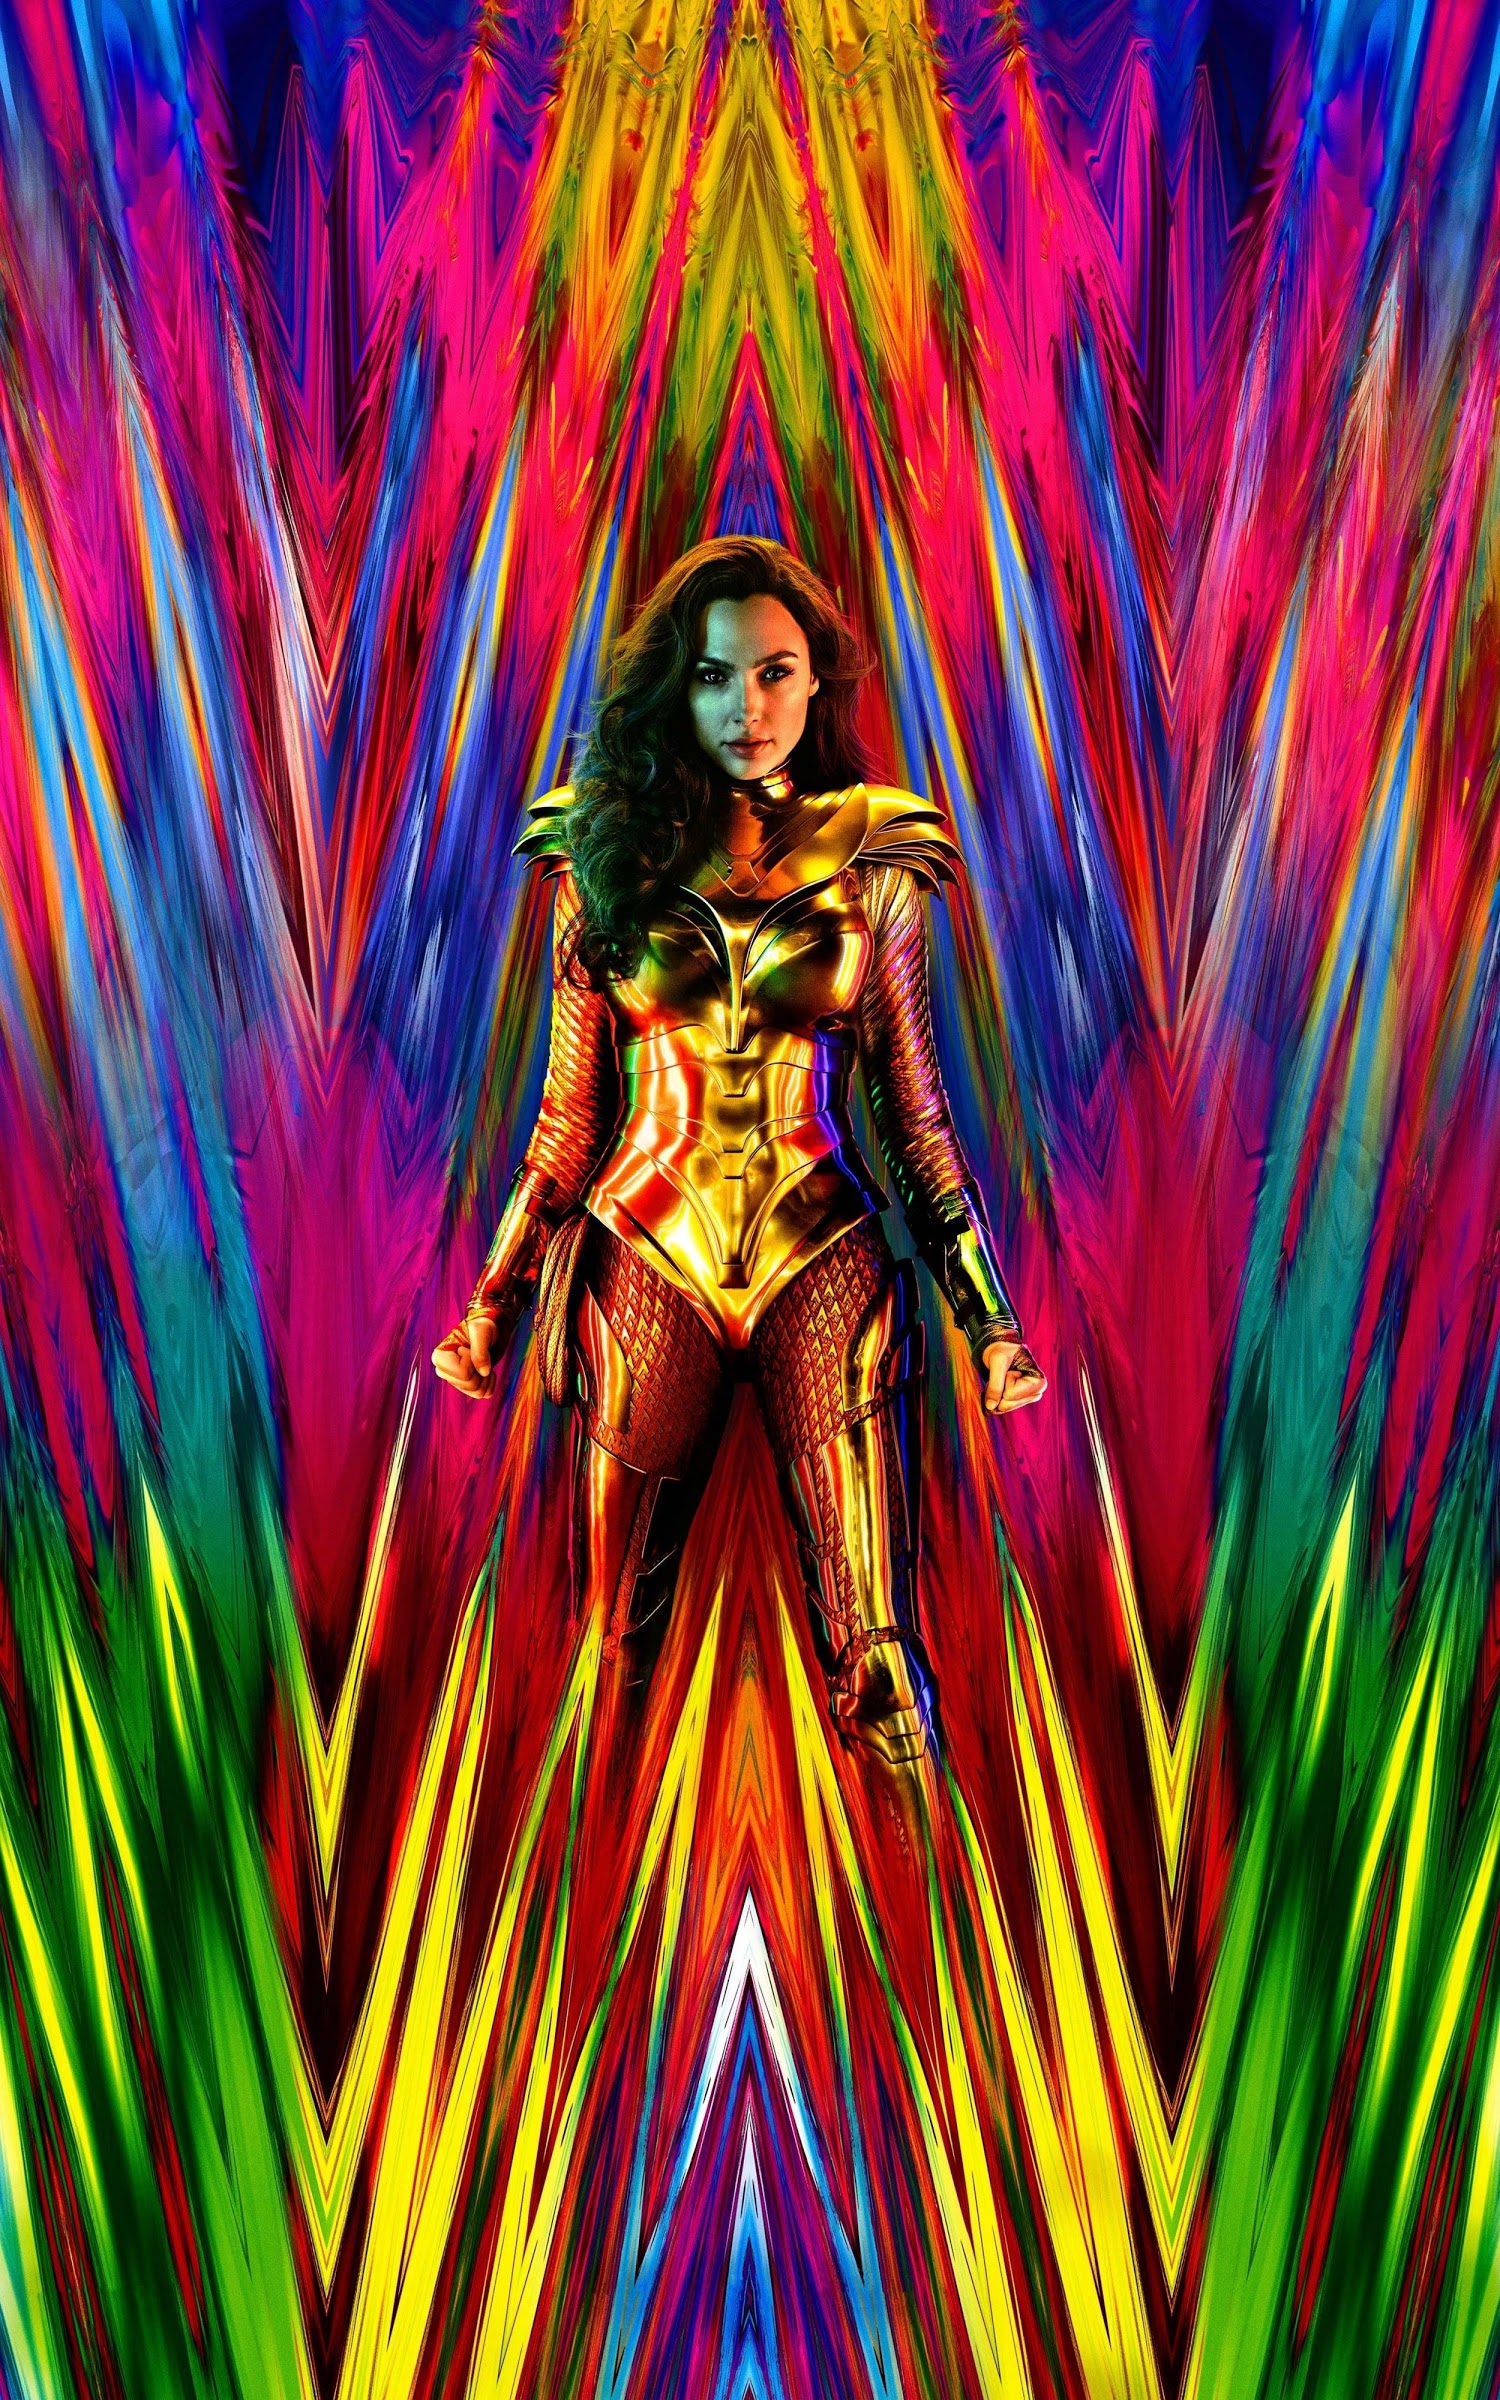 Wonder Woman 1984 2020 Wallpaper 4k Hero Collection Laginate Wonder Woman Gal Gadot Wonder Woman Gal Gadot